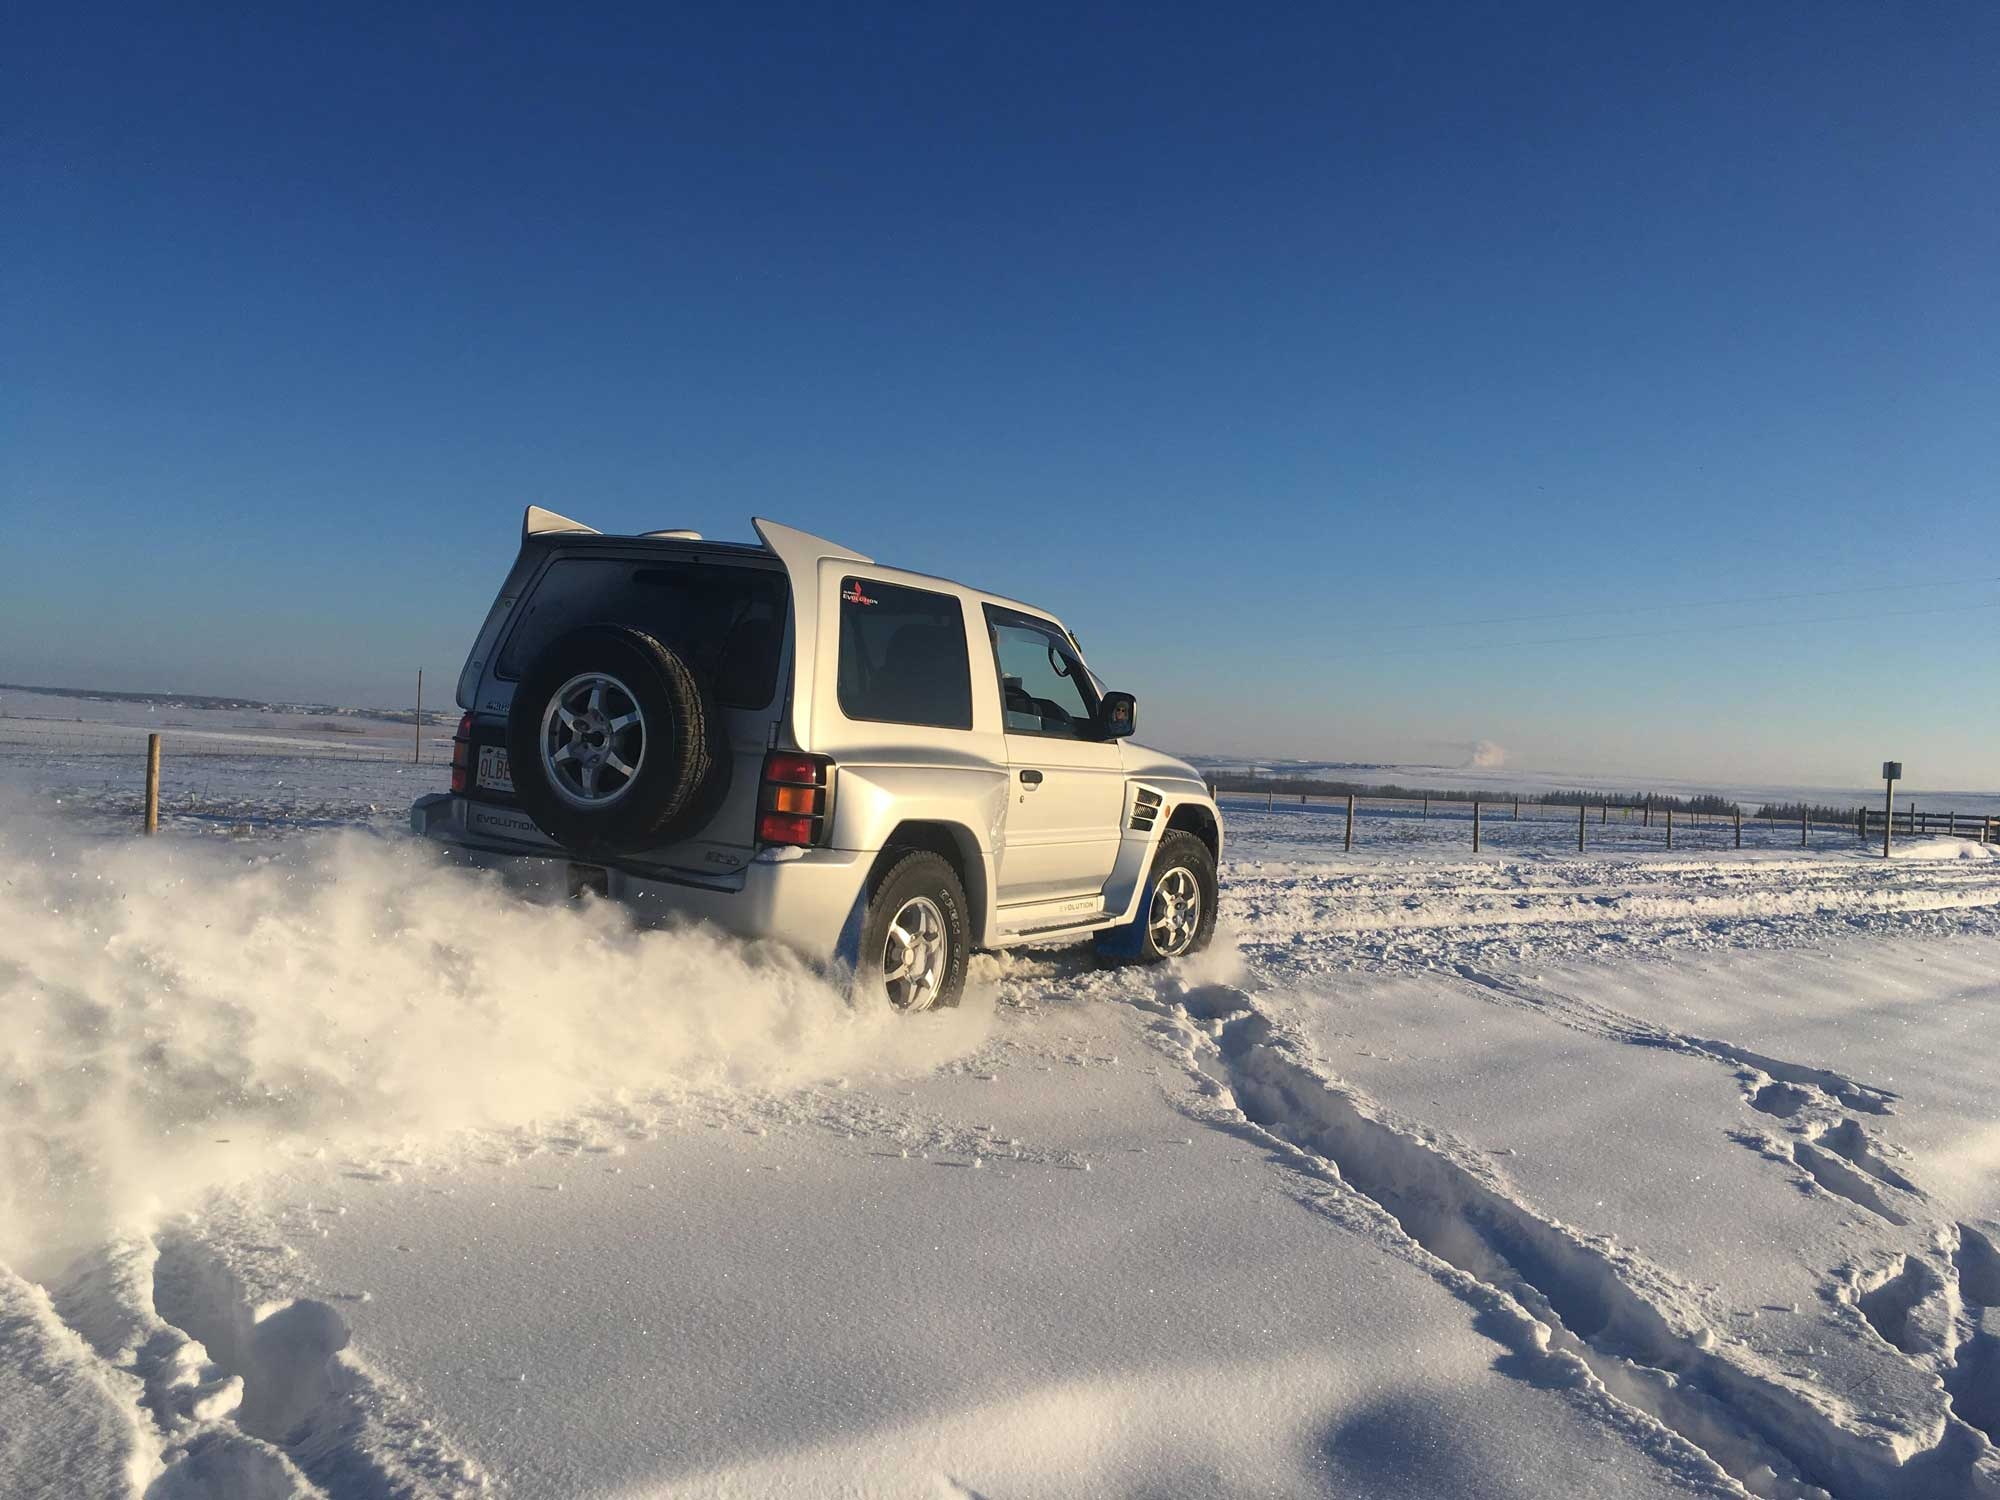 Mitsubishi Pajero Evo in the snow